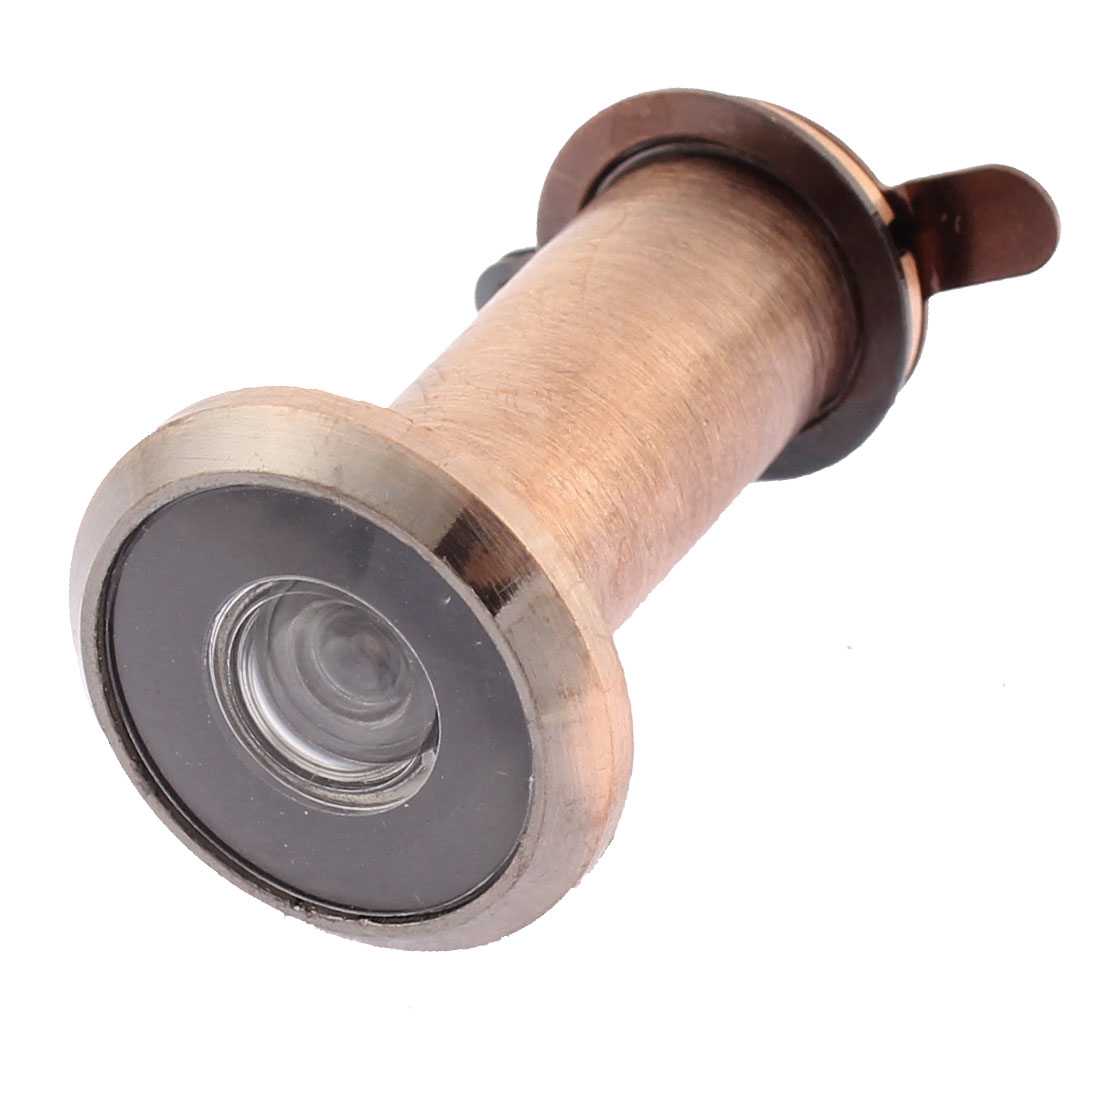 Copper Tone 200 Degree Wide Angle Scope Peephole 35-60mm Door Viewer w Privacy Cover